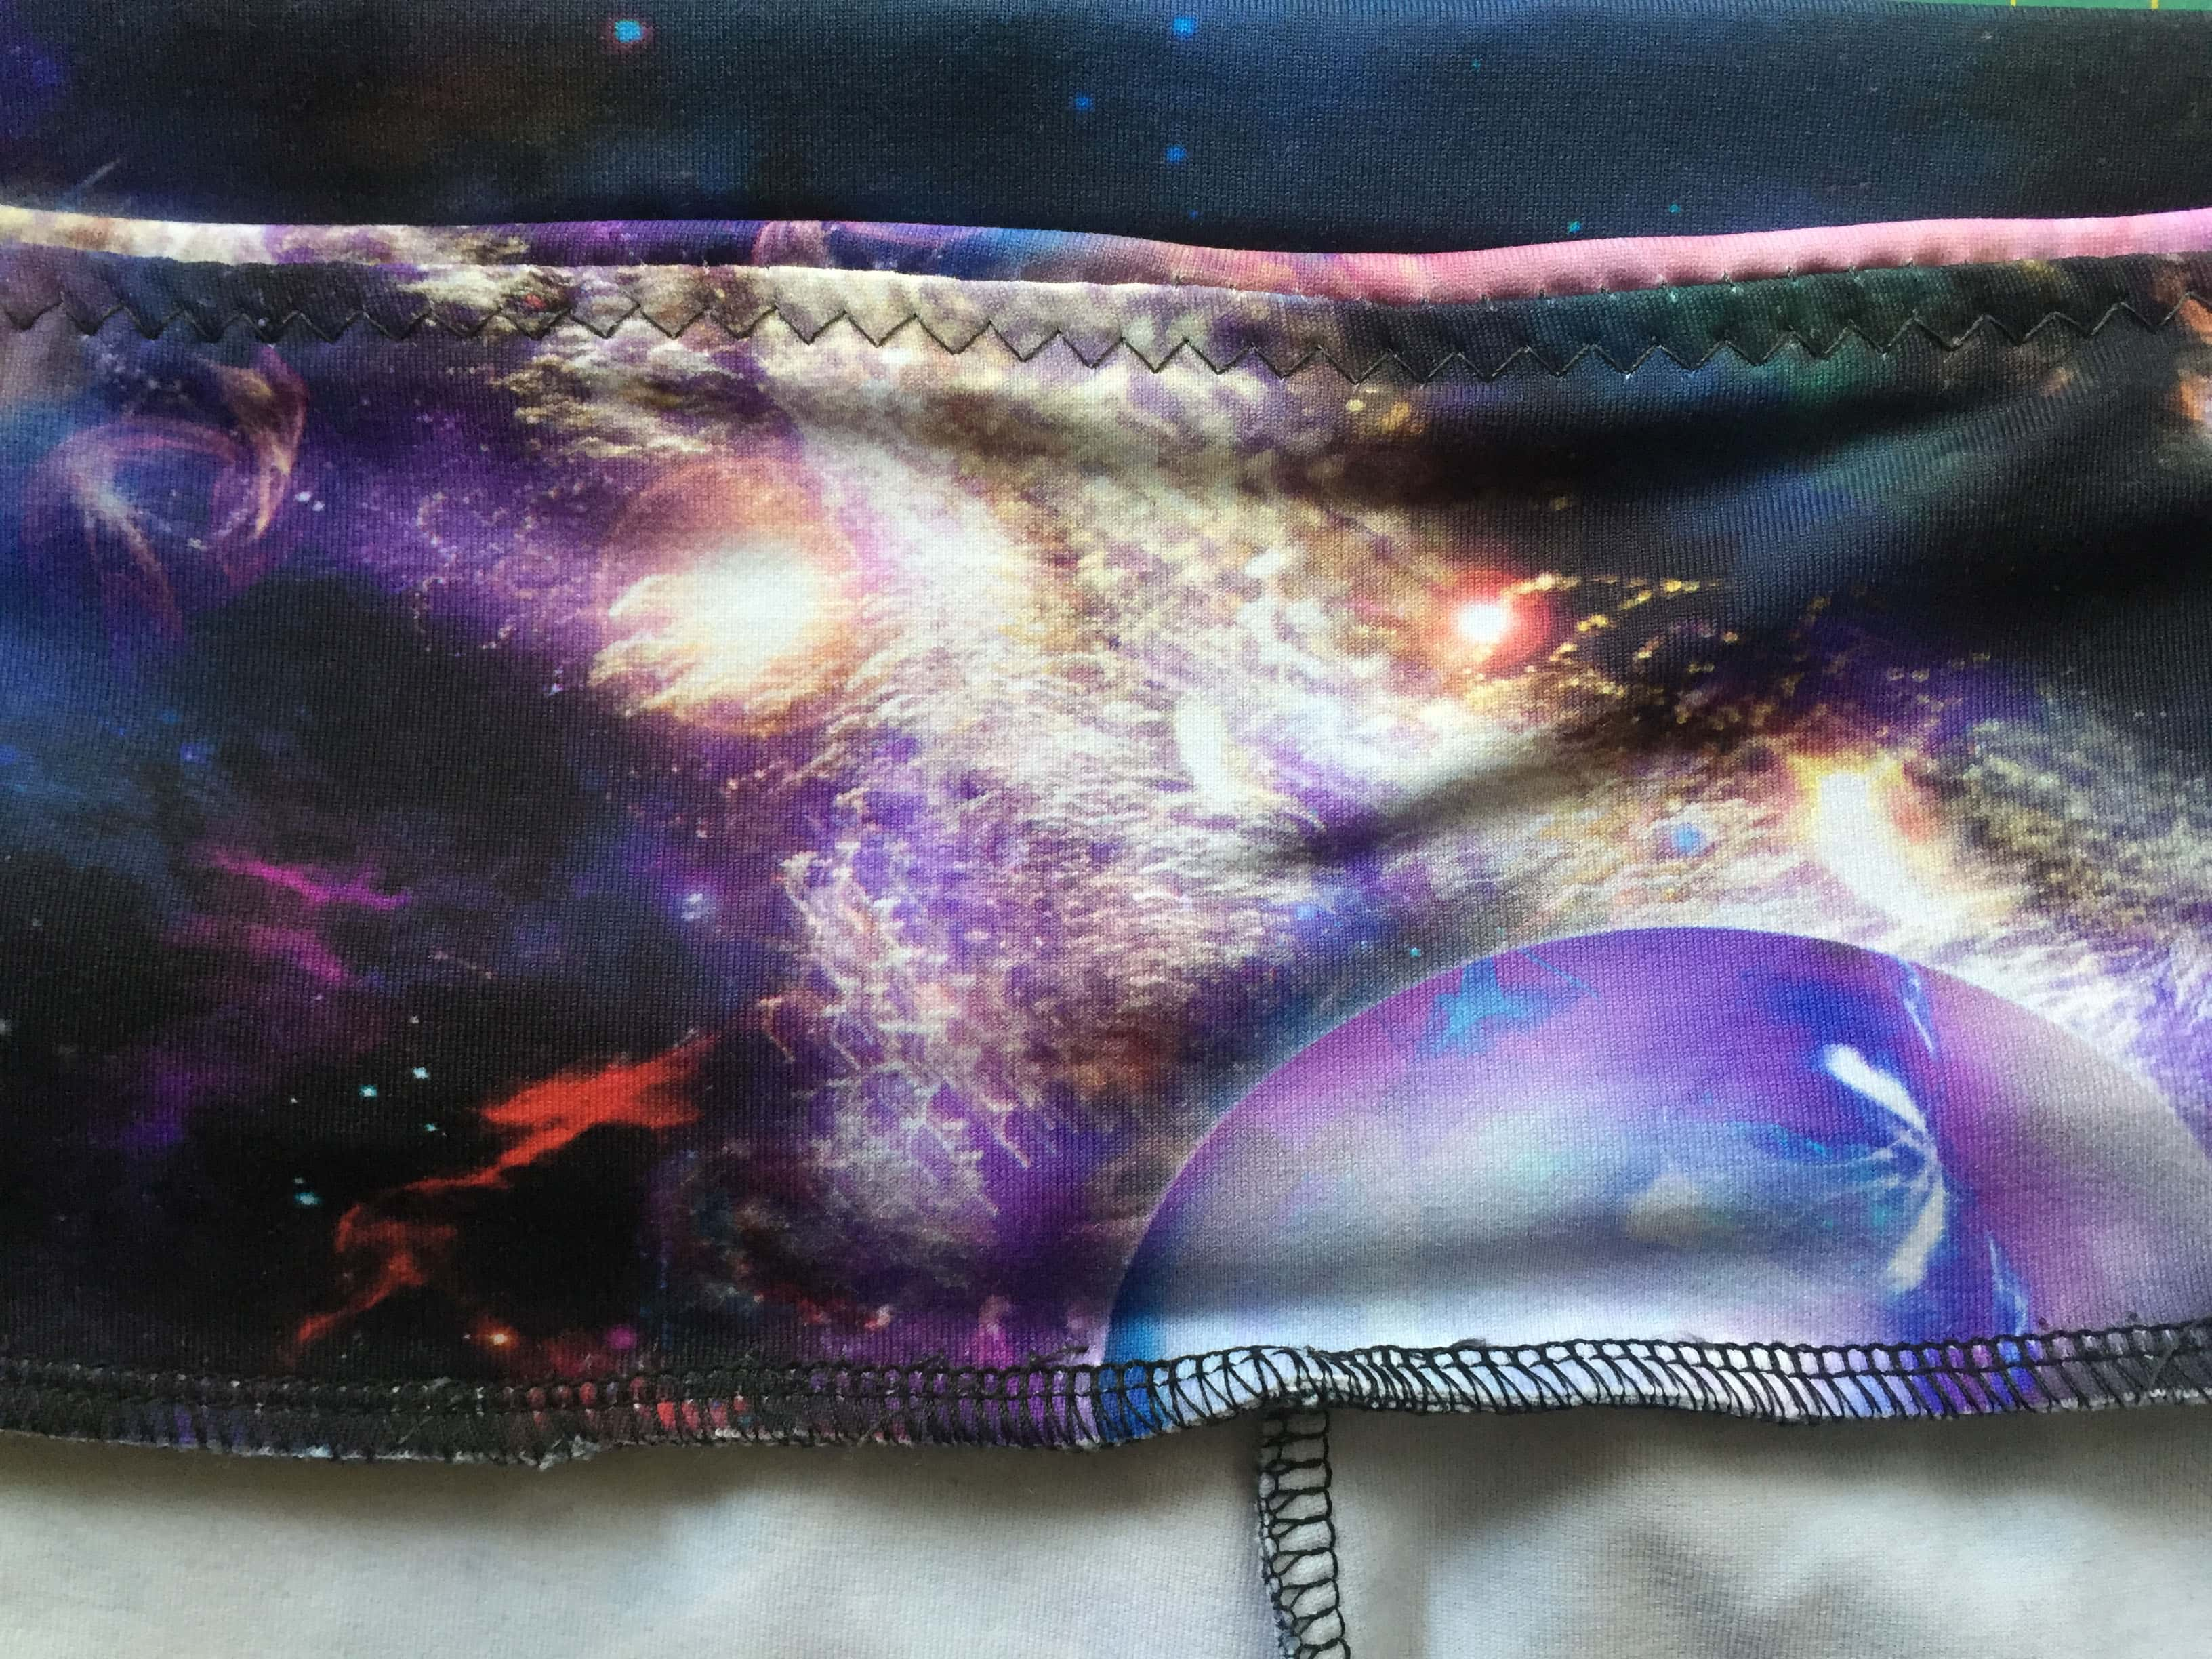 Waistband, picture of the inside to capture  the detail of the elastic insertion